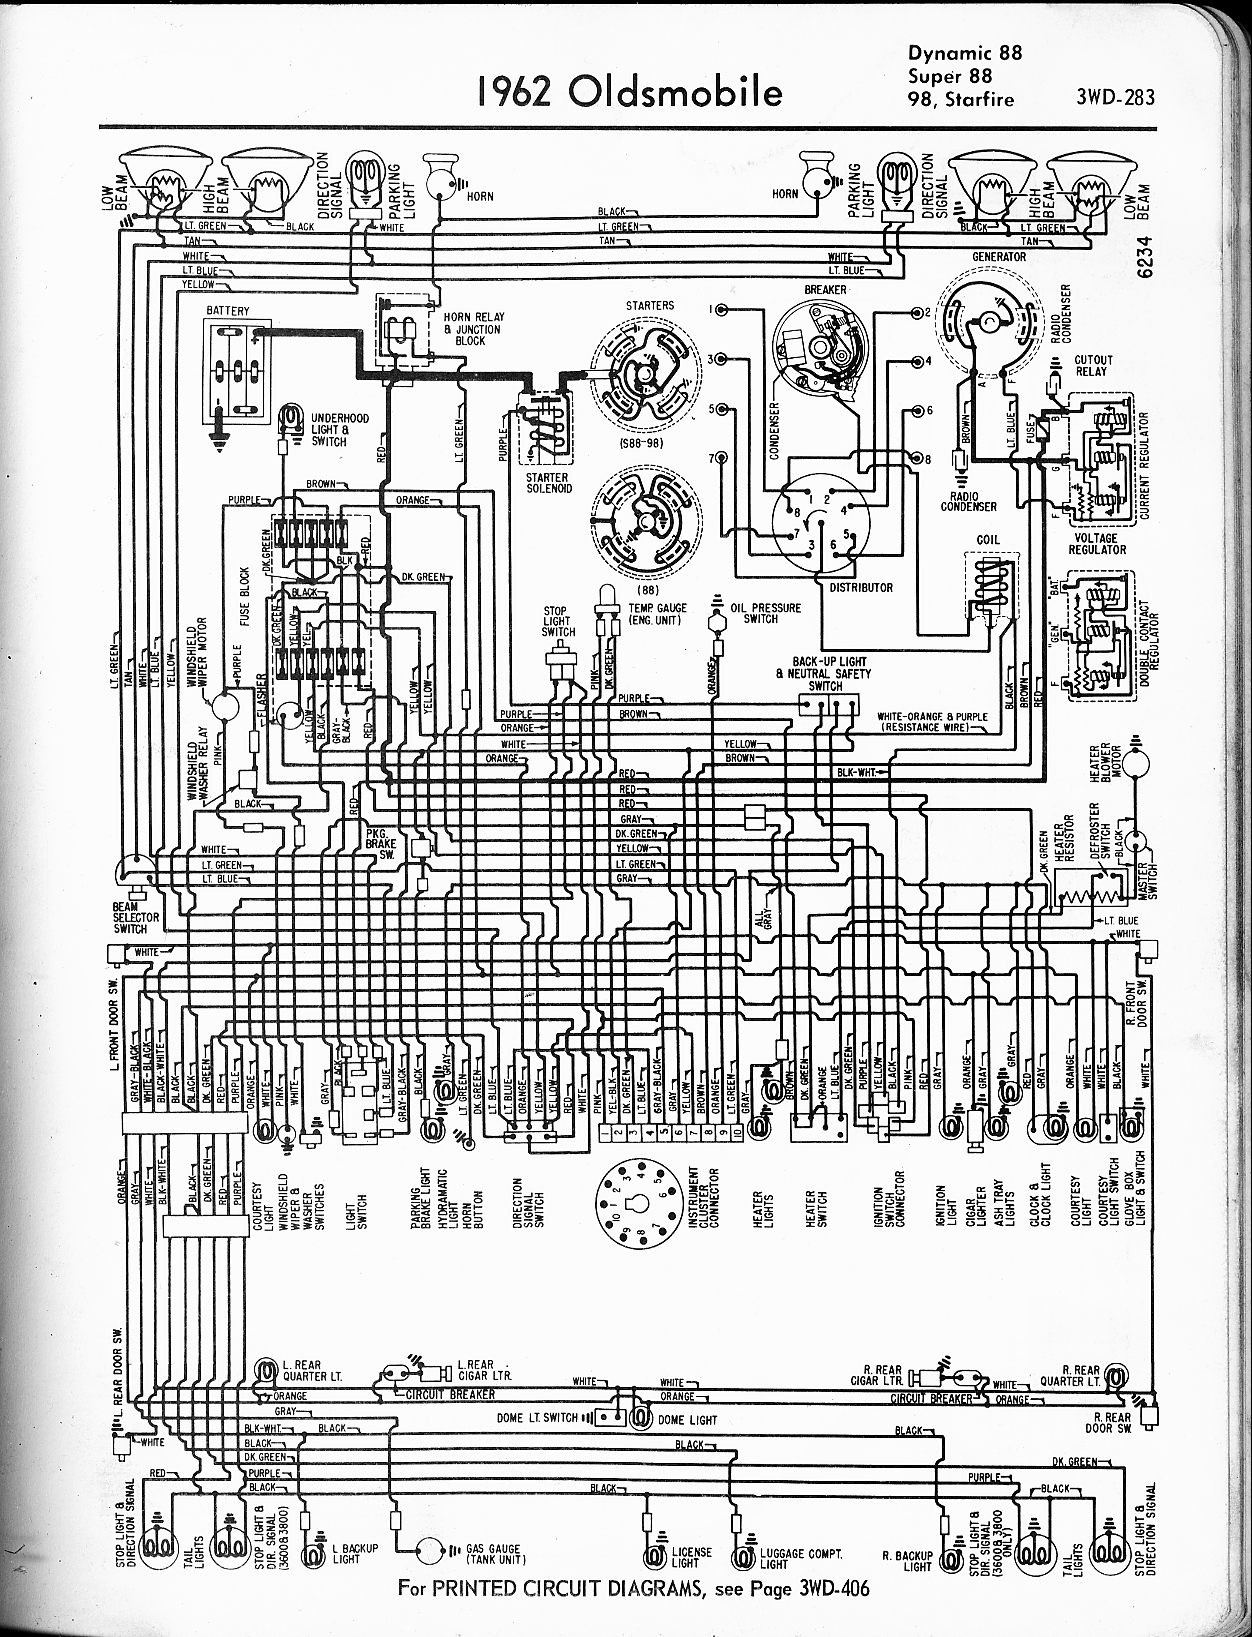 hight resolution of oldsmobile wiring diagrams the old car manual project 1999 oldsmobile 88 wiring diagram 1962 dynamic 88